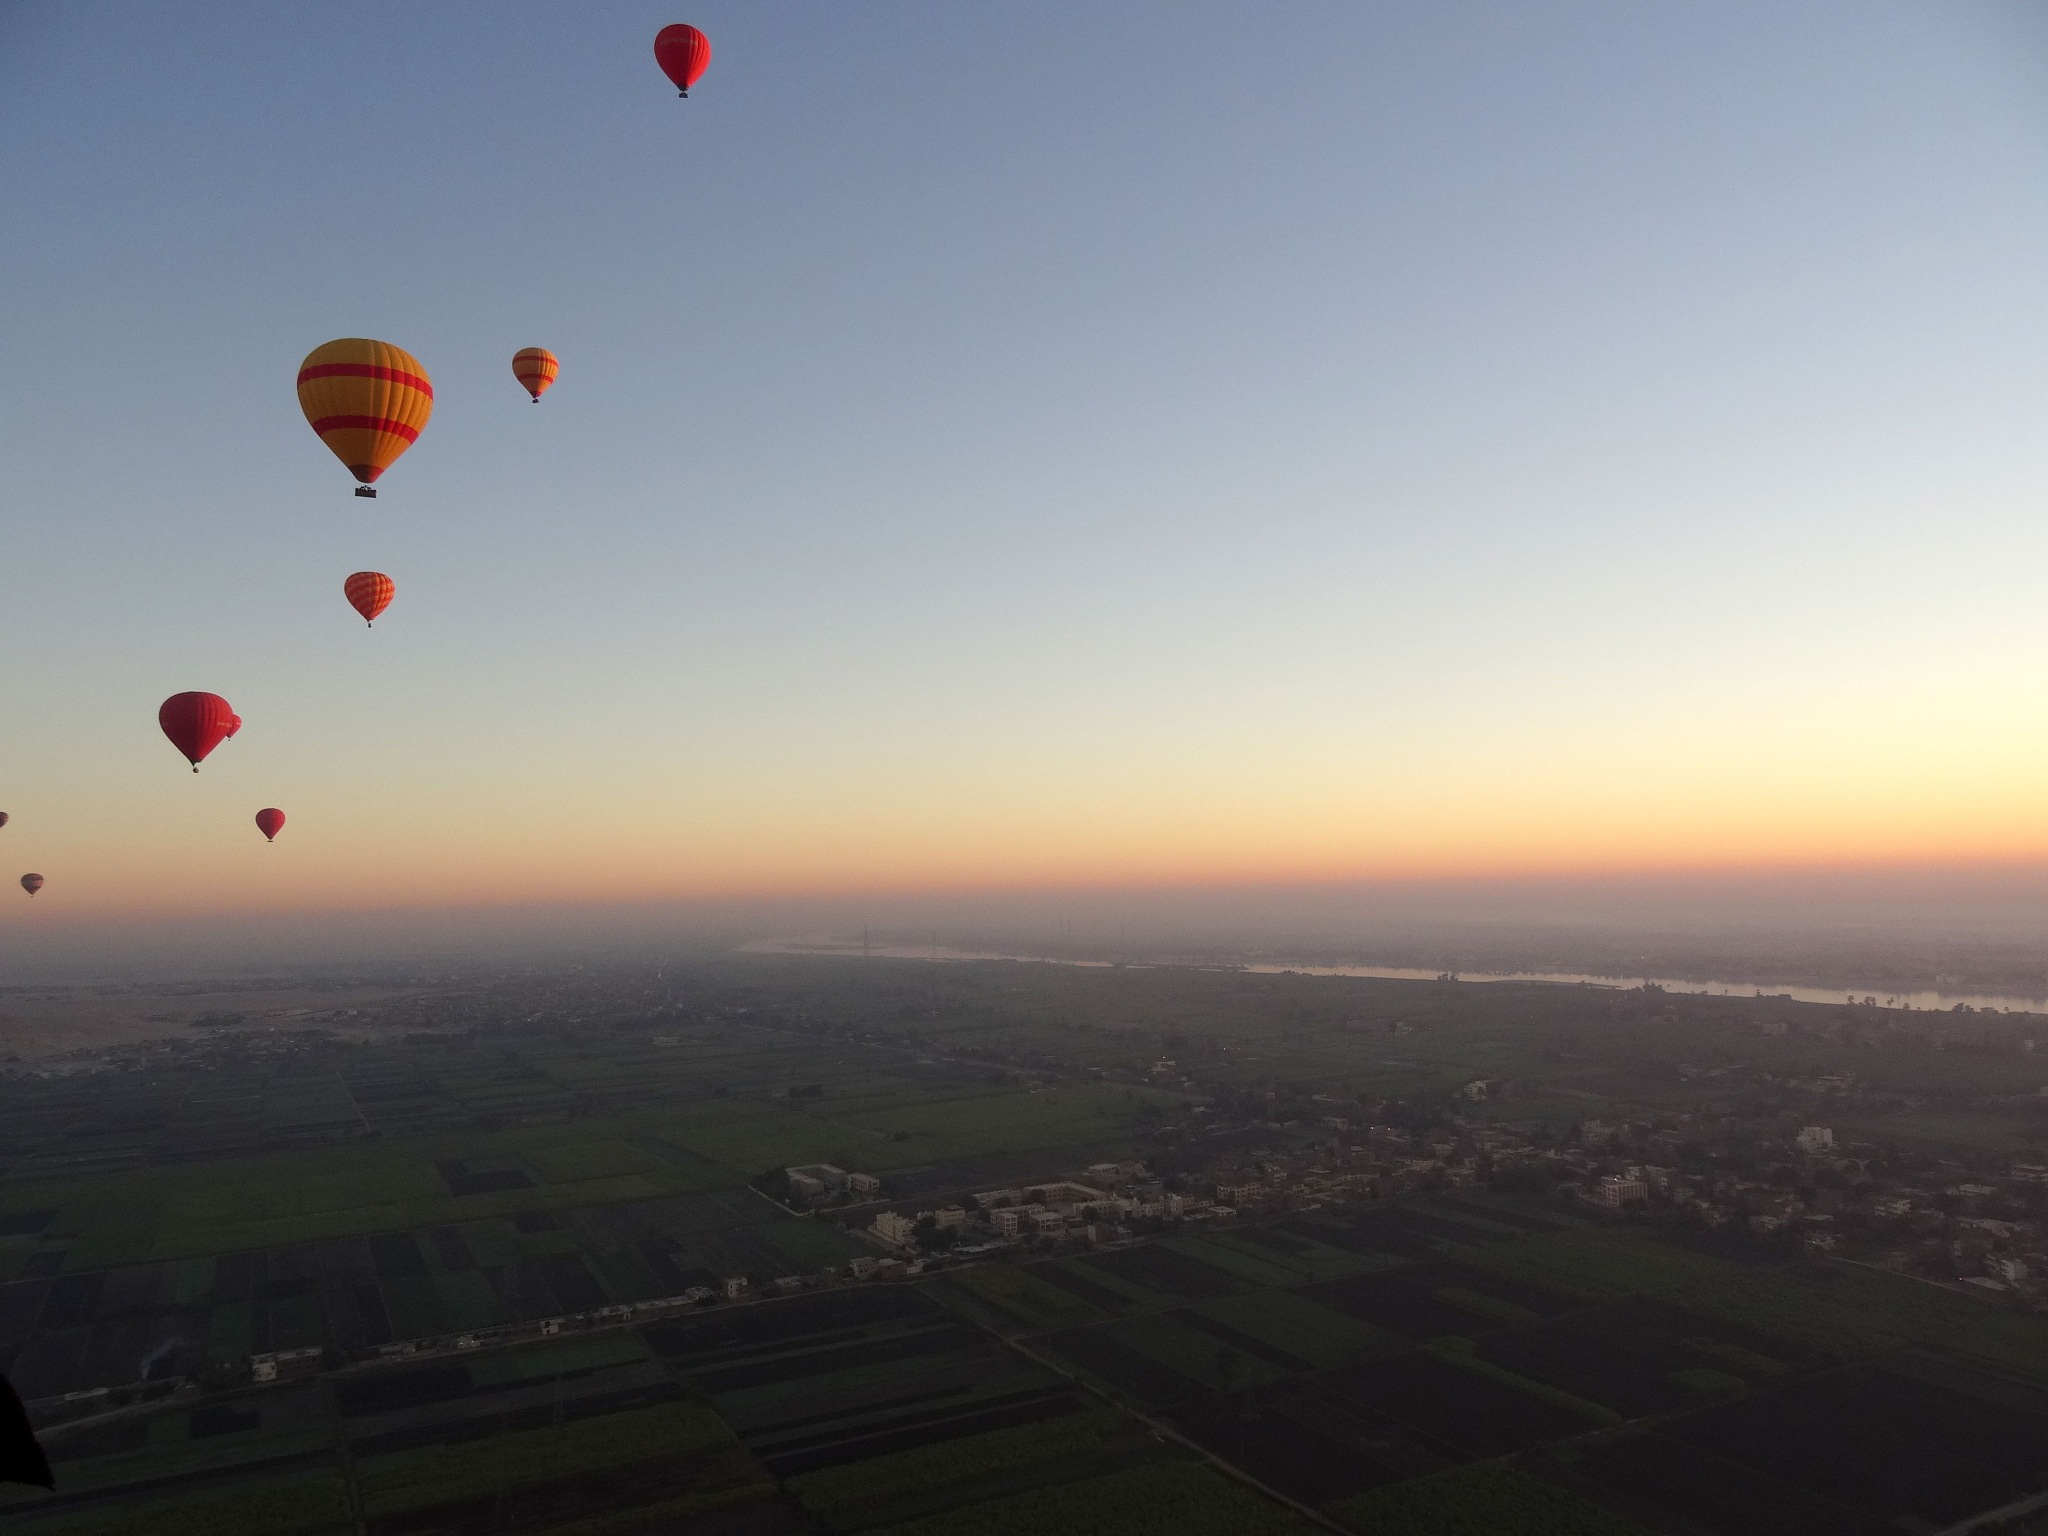 Hot Air Balloons over the Nile by stargazingadventures